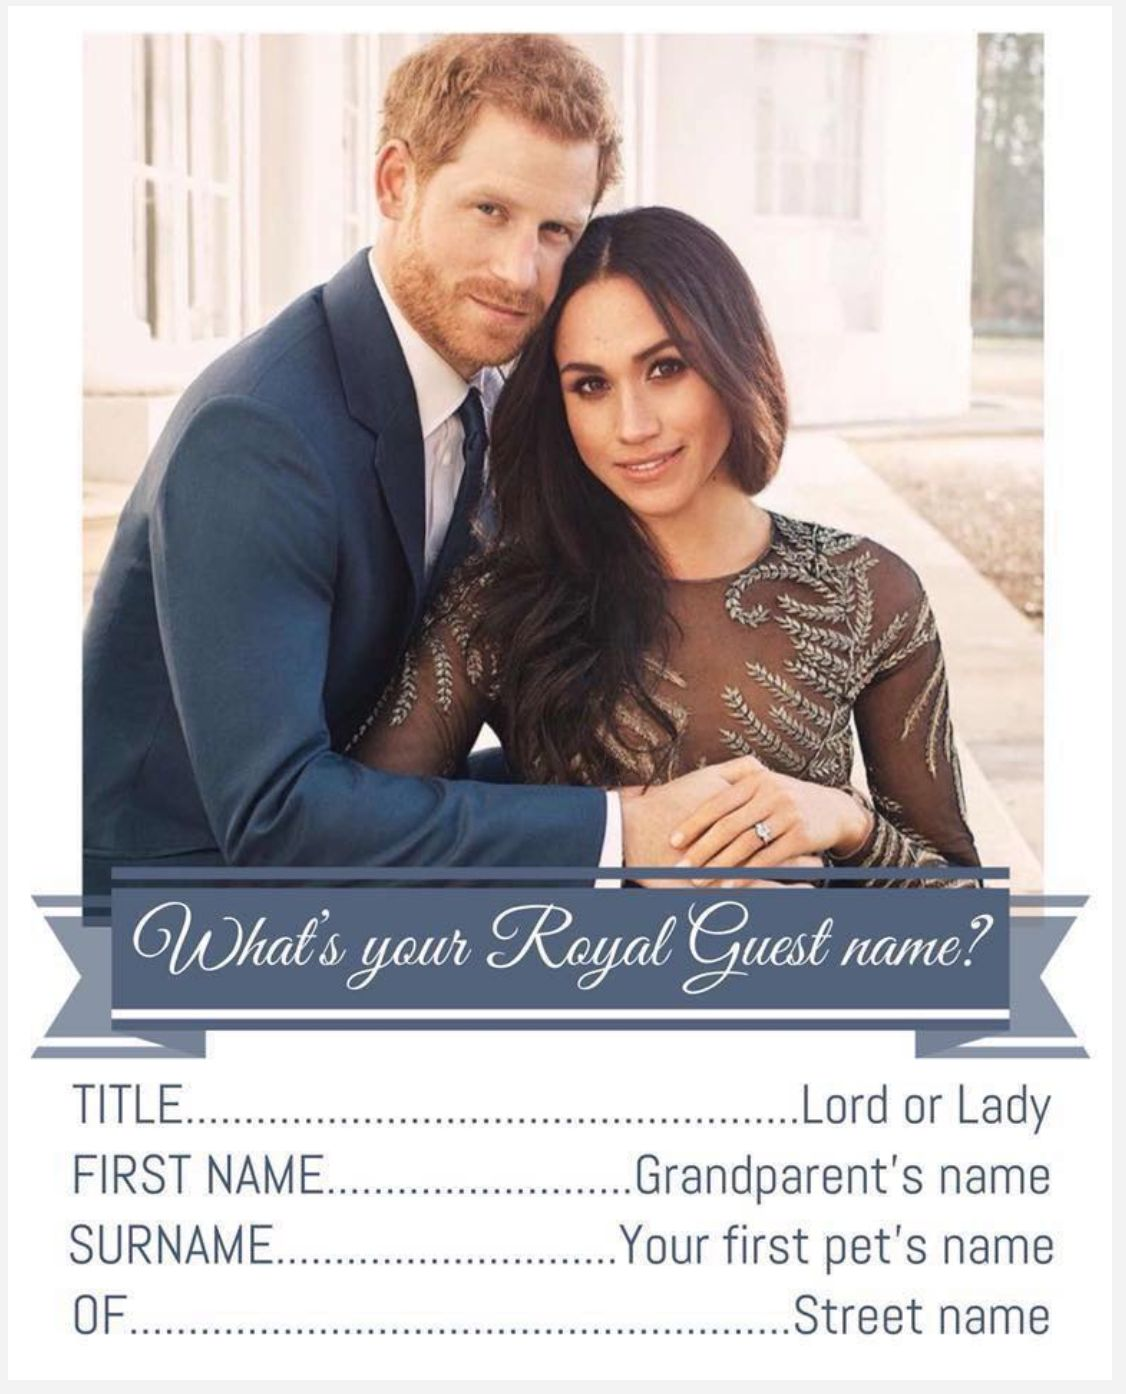 """This is one version of the """"royal guest name"""" quiz."""